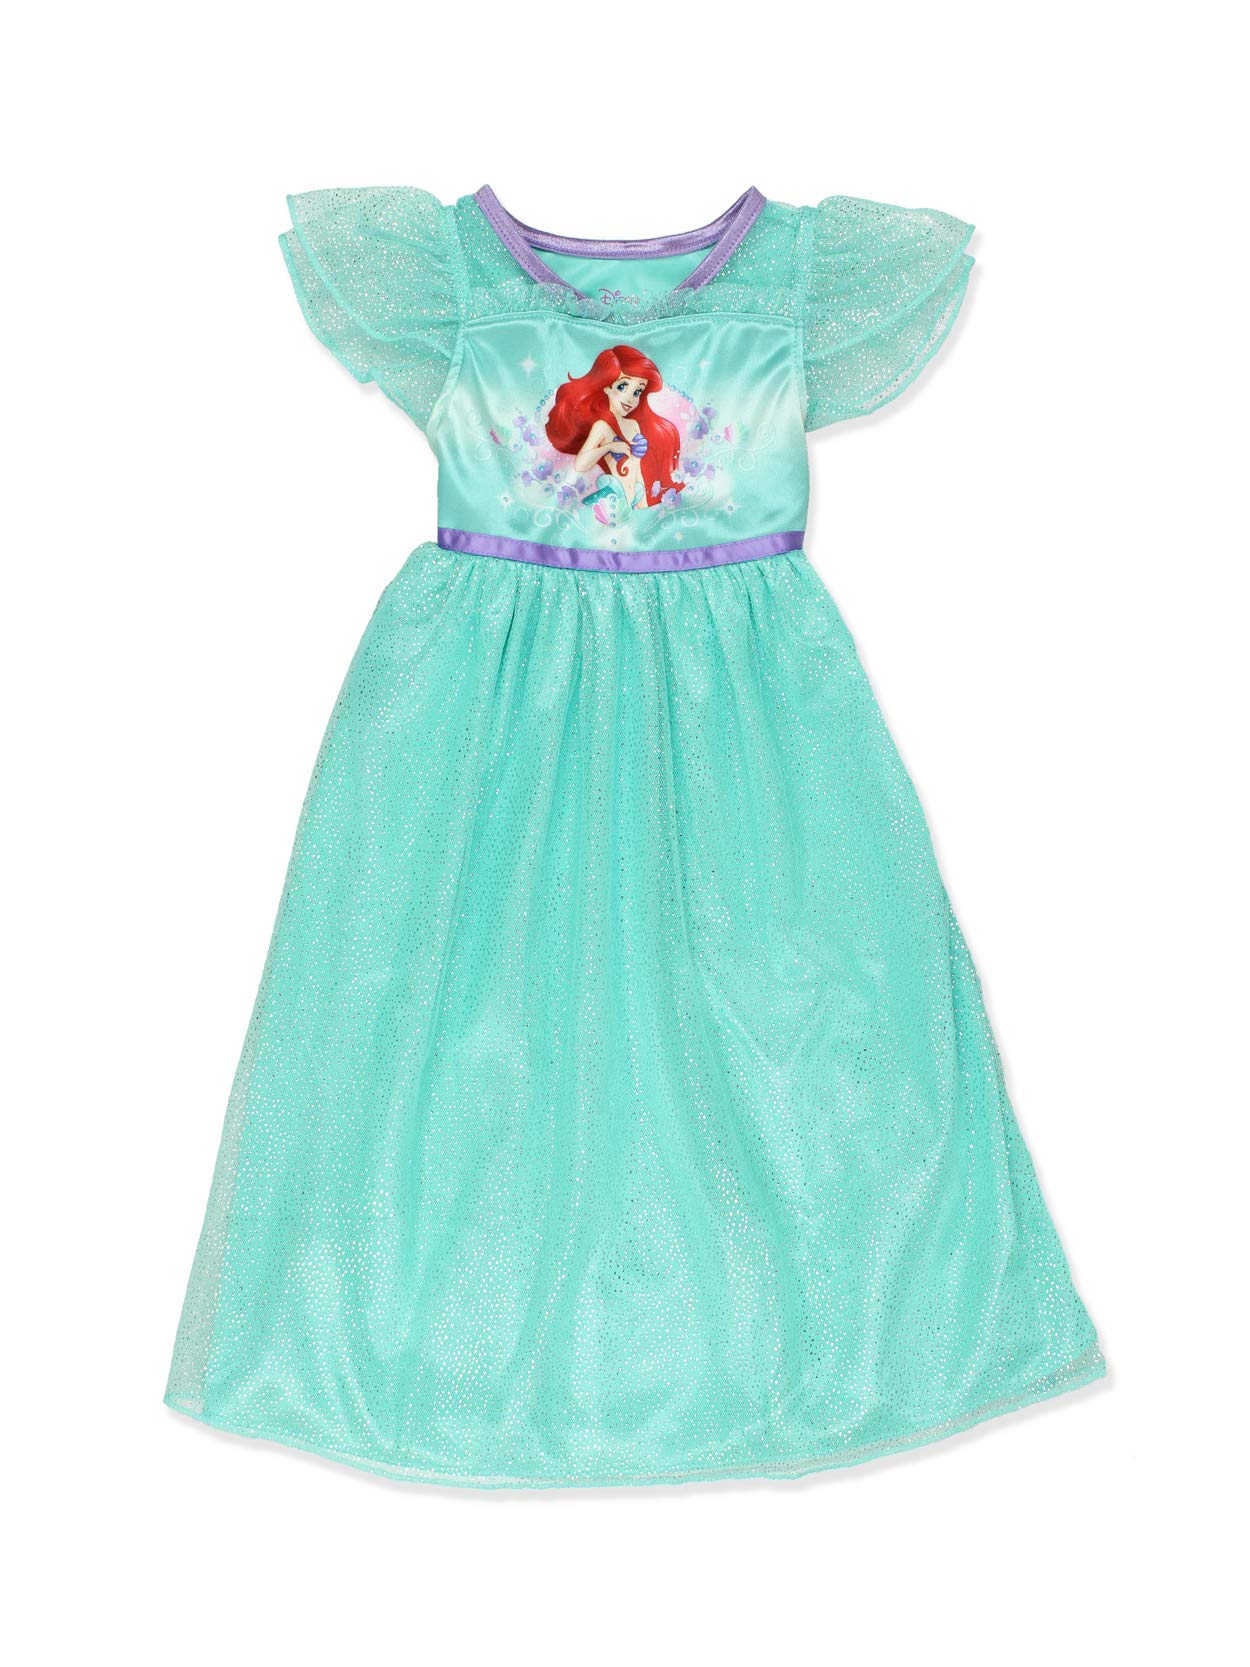 76342808aa The Little Mermaid Ariel Girls Fantasy Gown Nightgown Pajamas  (Toddler Little Kid Big